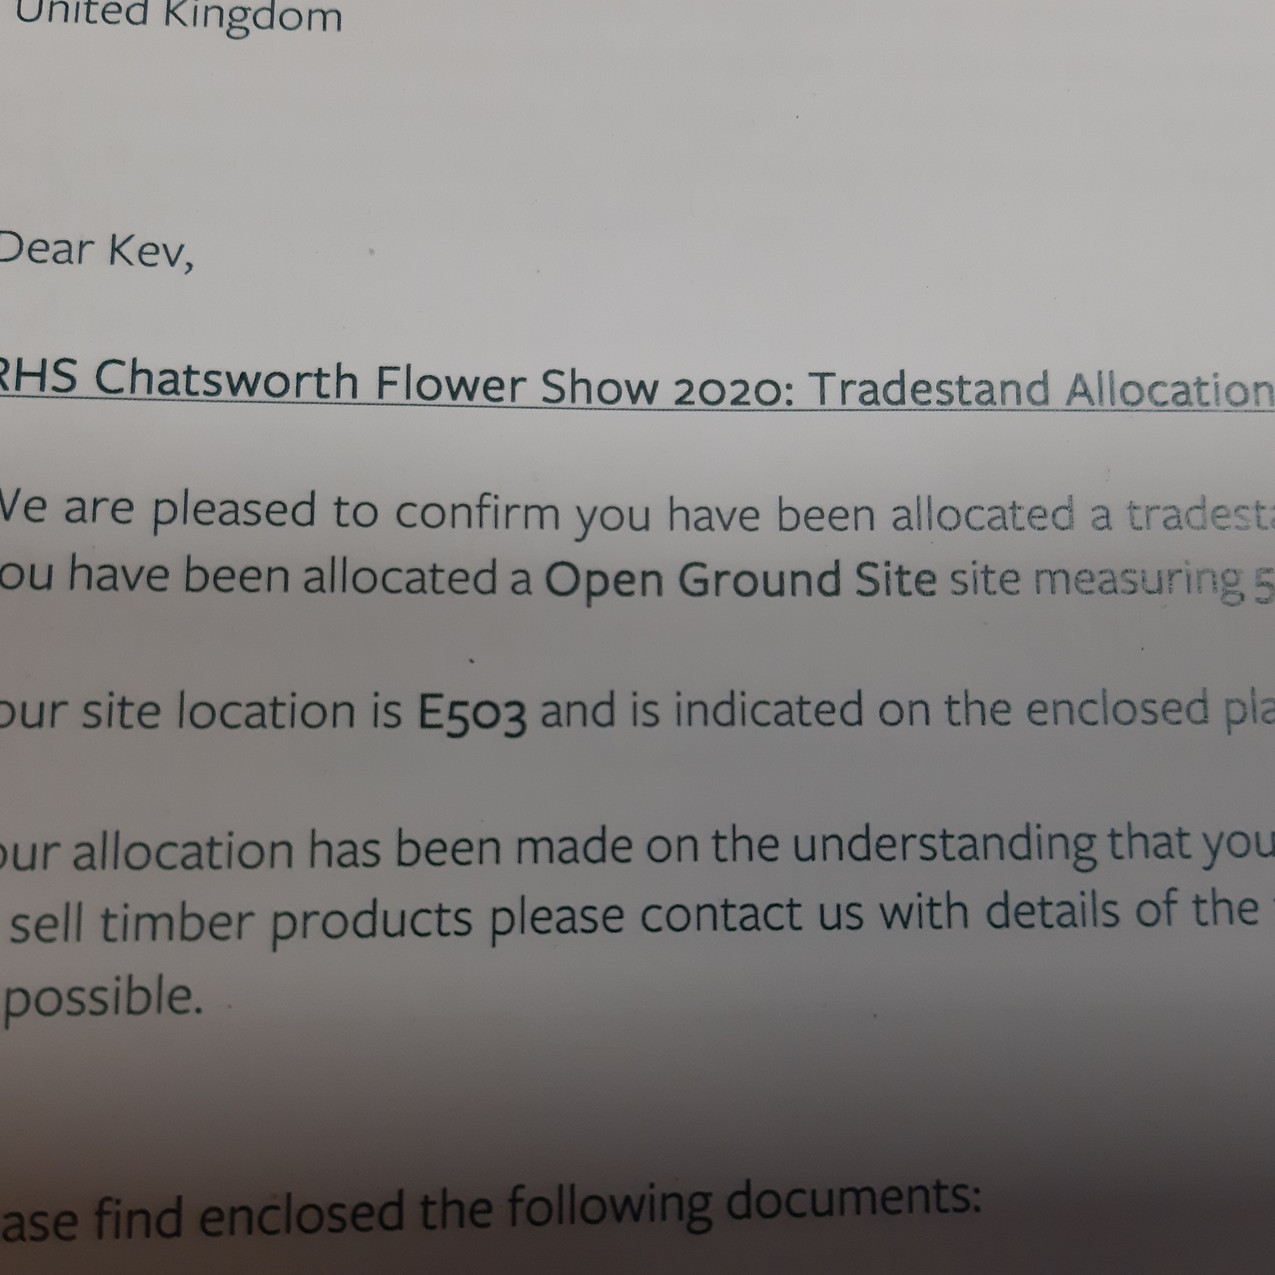 RHS Chatsworth Flower Show acceptance le